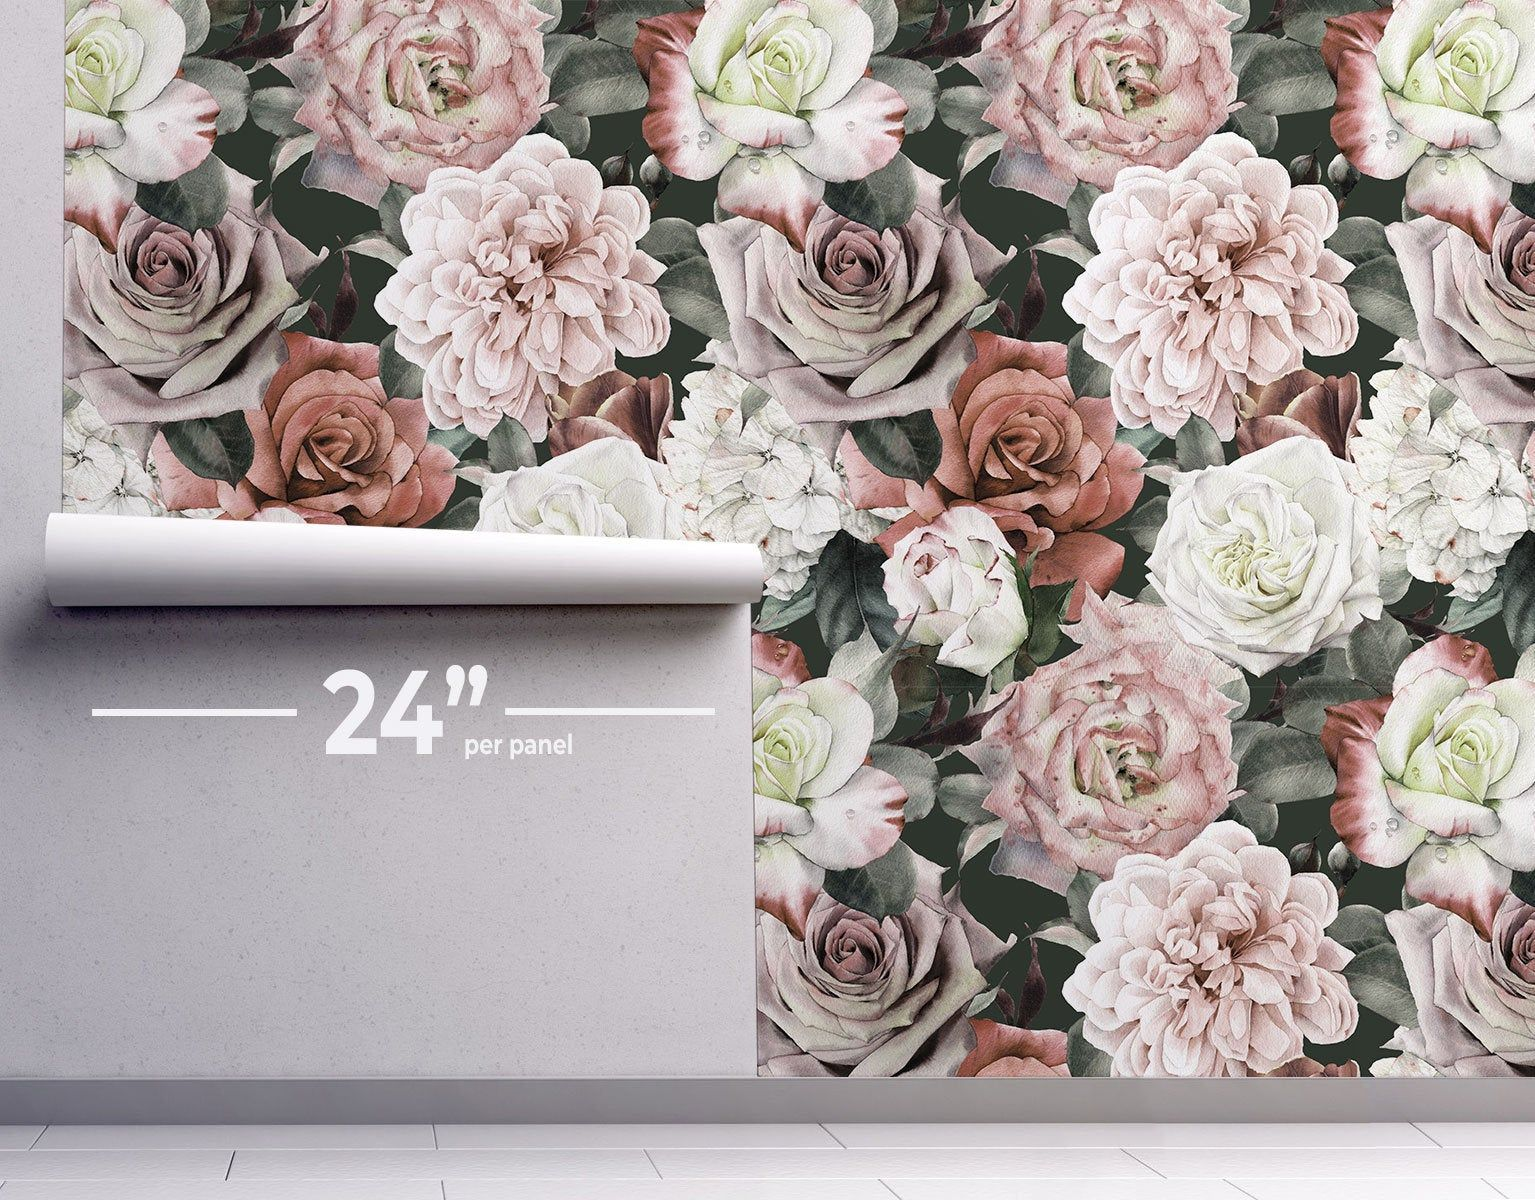 Vintage Floral Removable Wallpaper By Eazywallz Custom Etsy In 2020 Vintage Floral Wallpapers Floral Wallpaper Removable Wallpaper